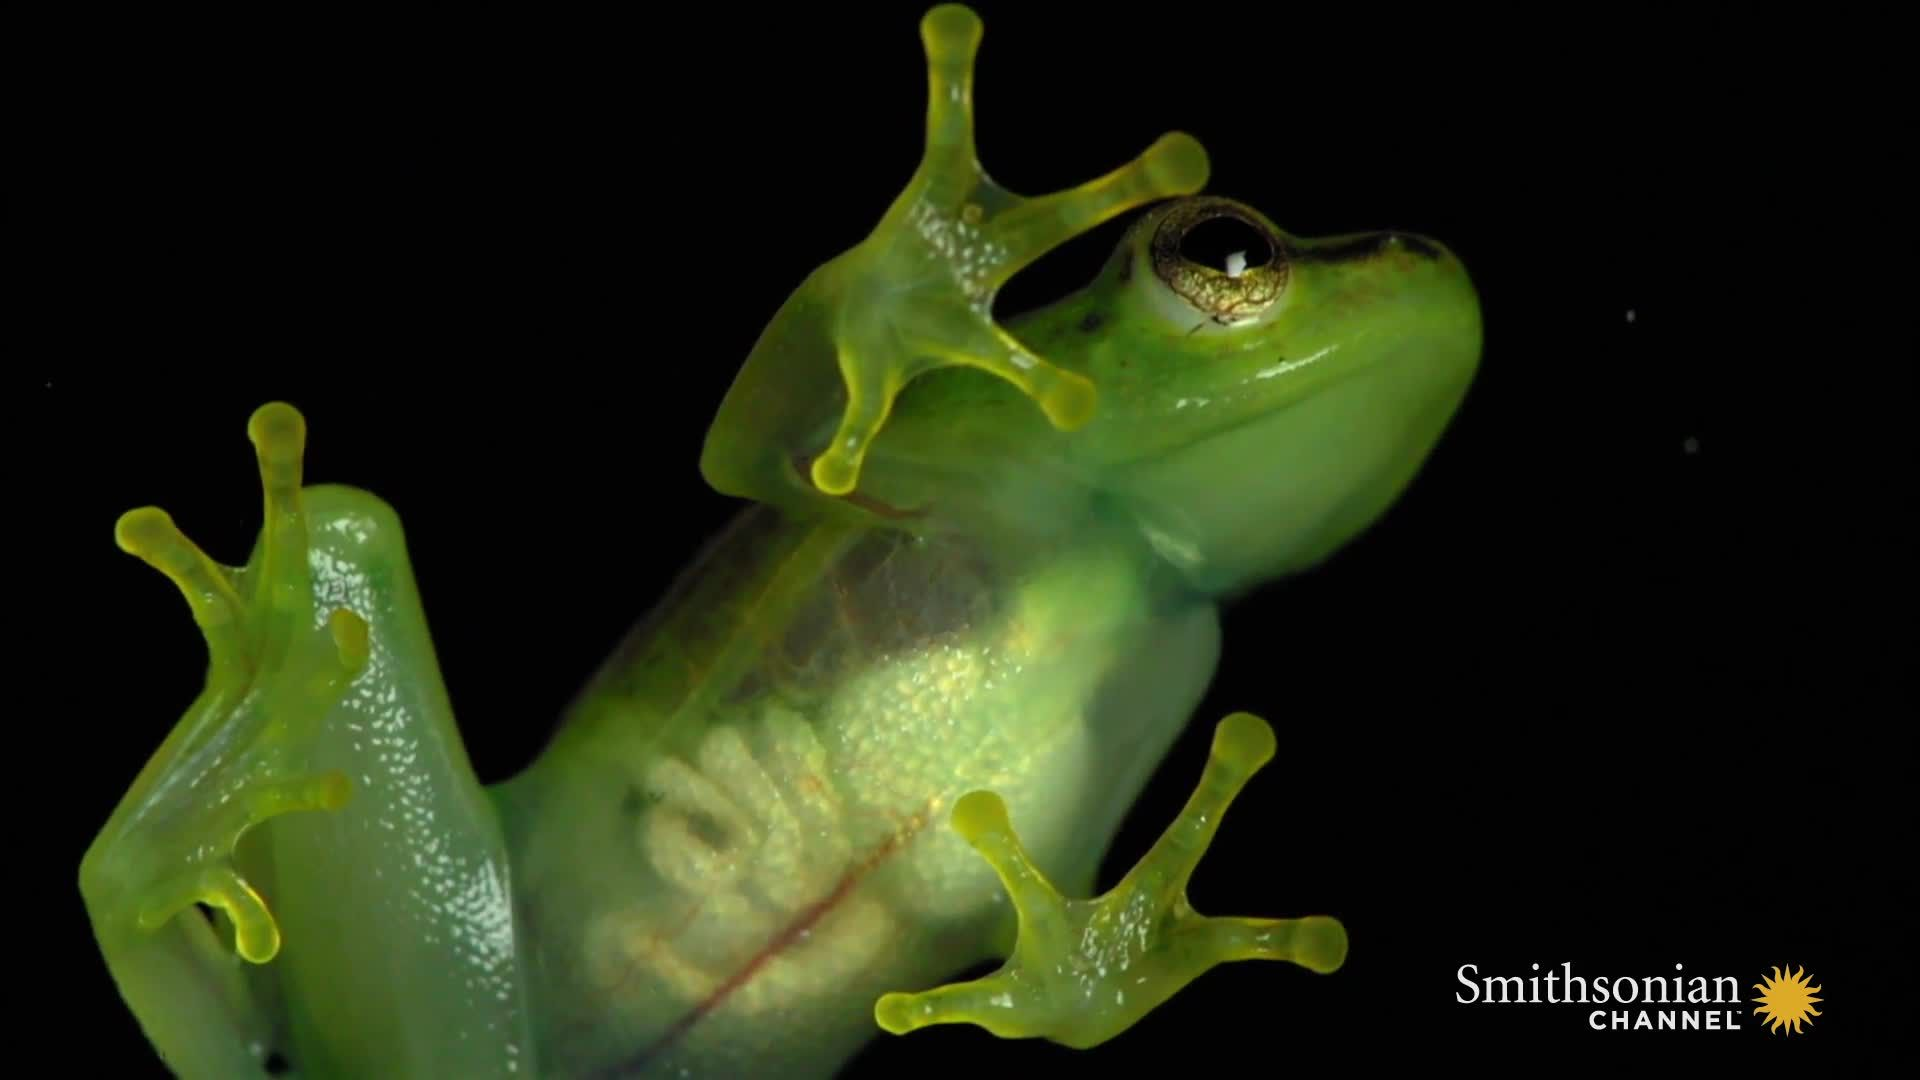 a look inside this see-through frog | smithsonian | animals